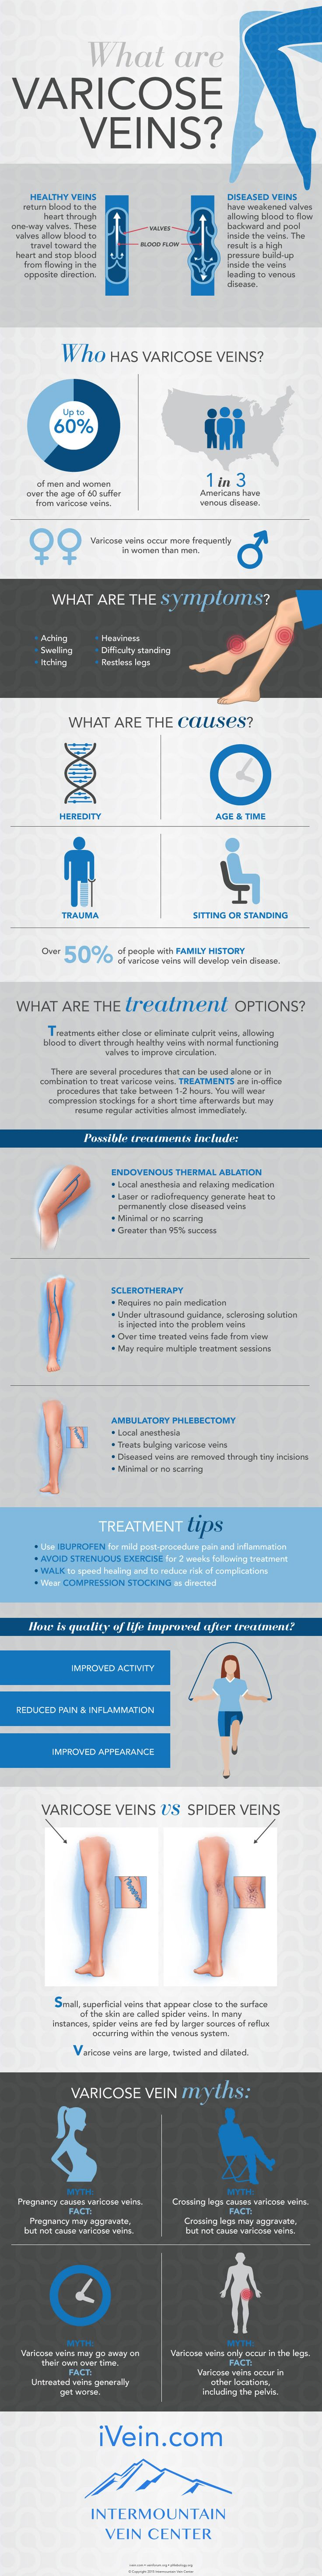 Spider veins aren't exactly the most awesome thing that can happen to your legs. But did you know that there's a difference between varicose veins and spider veins? Or that being pregnant won't cause varicose veins but may aggravate...